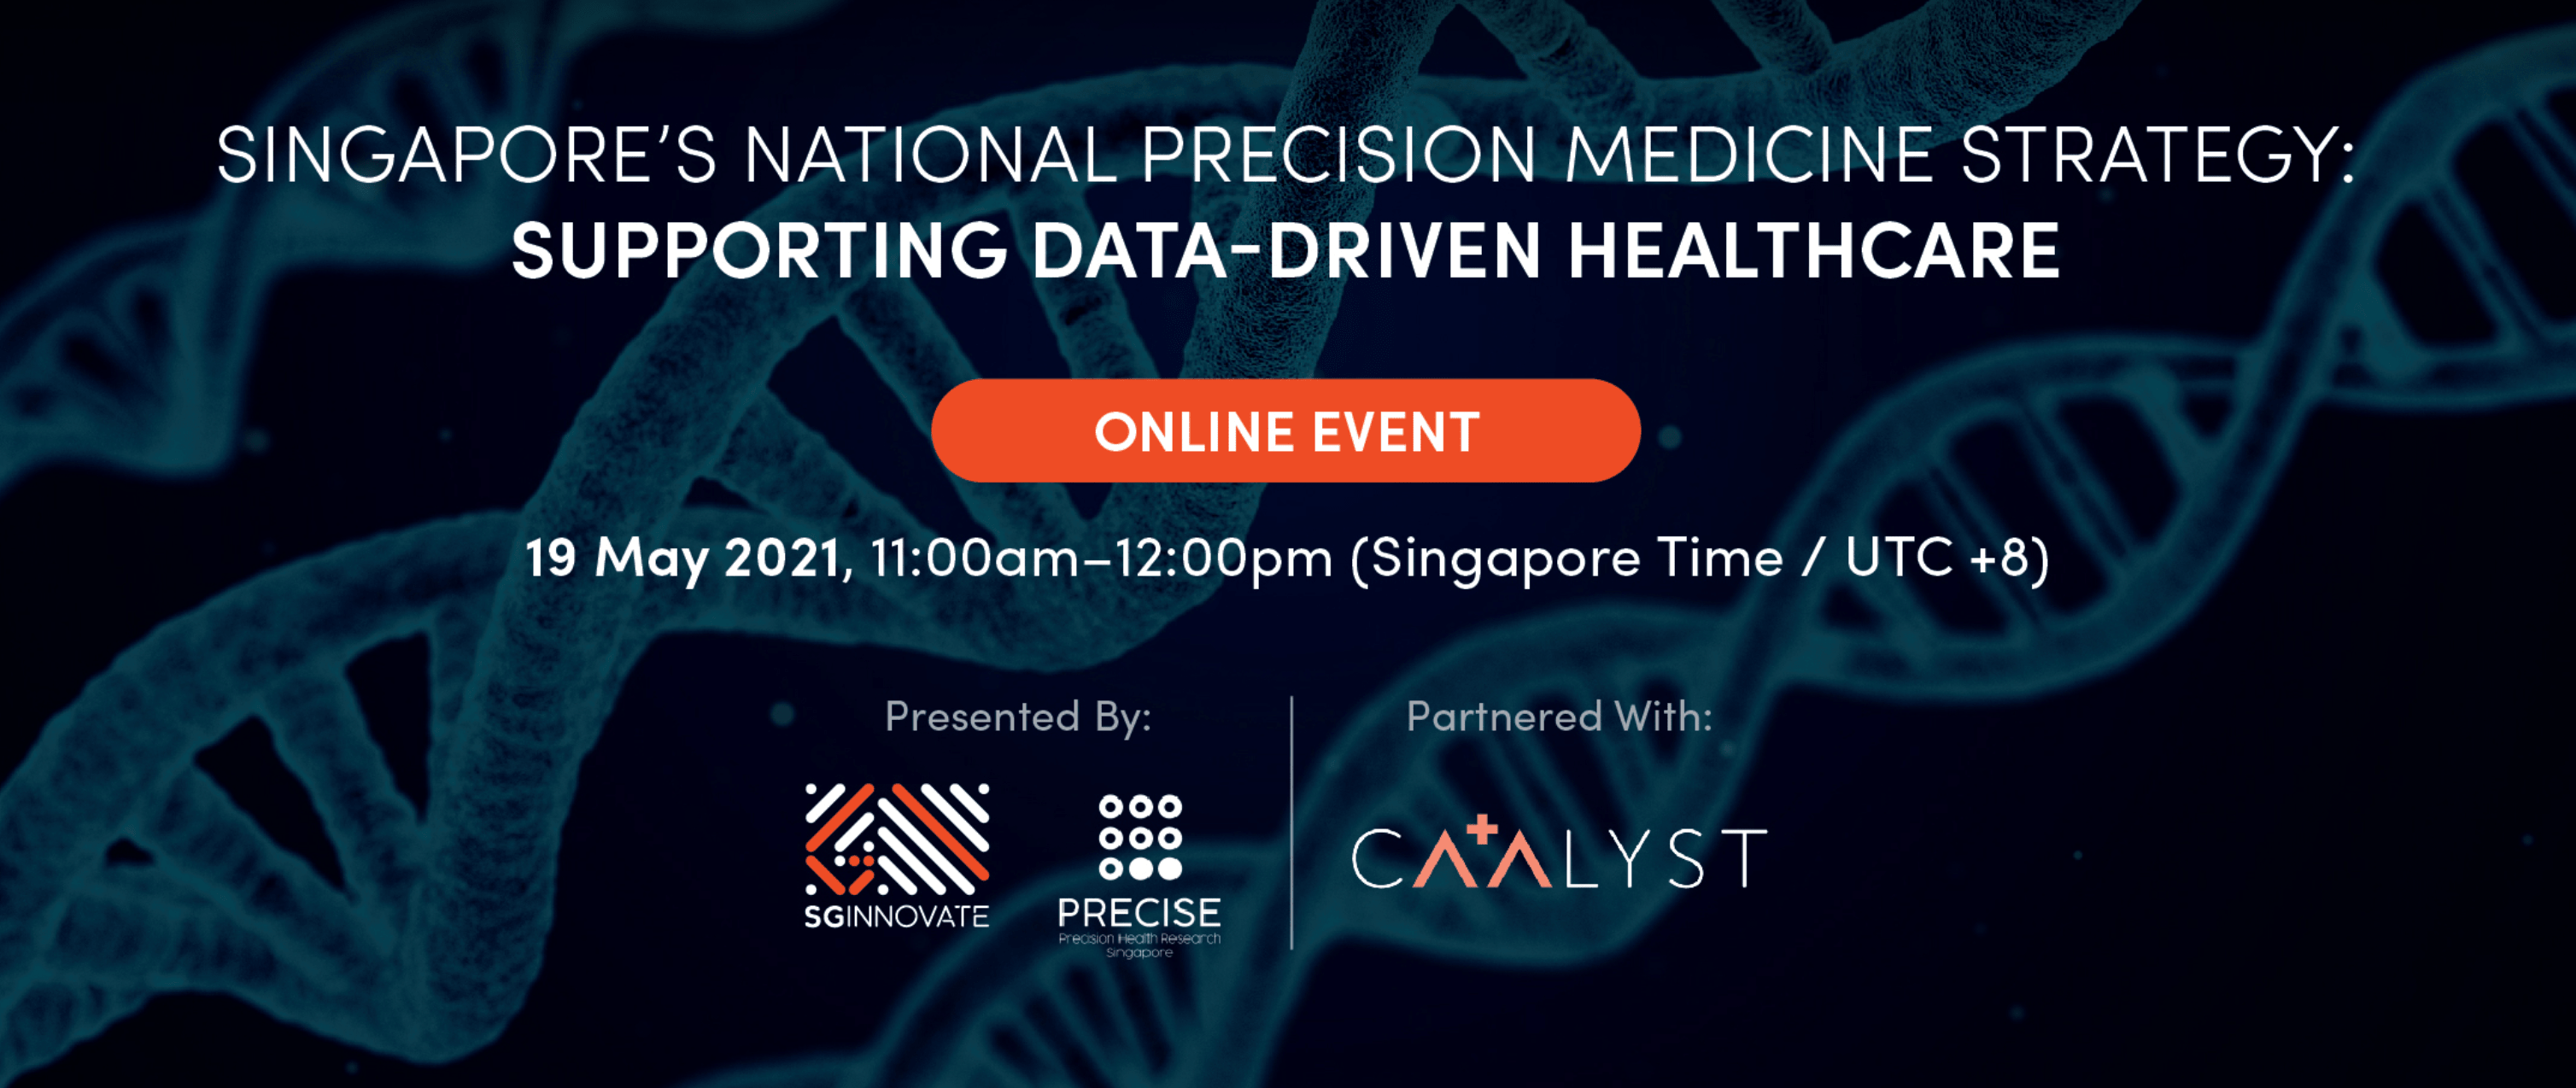 Singapore's National Precision Medicine Strategy: Supporting Data-Driven Healthcare